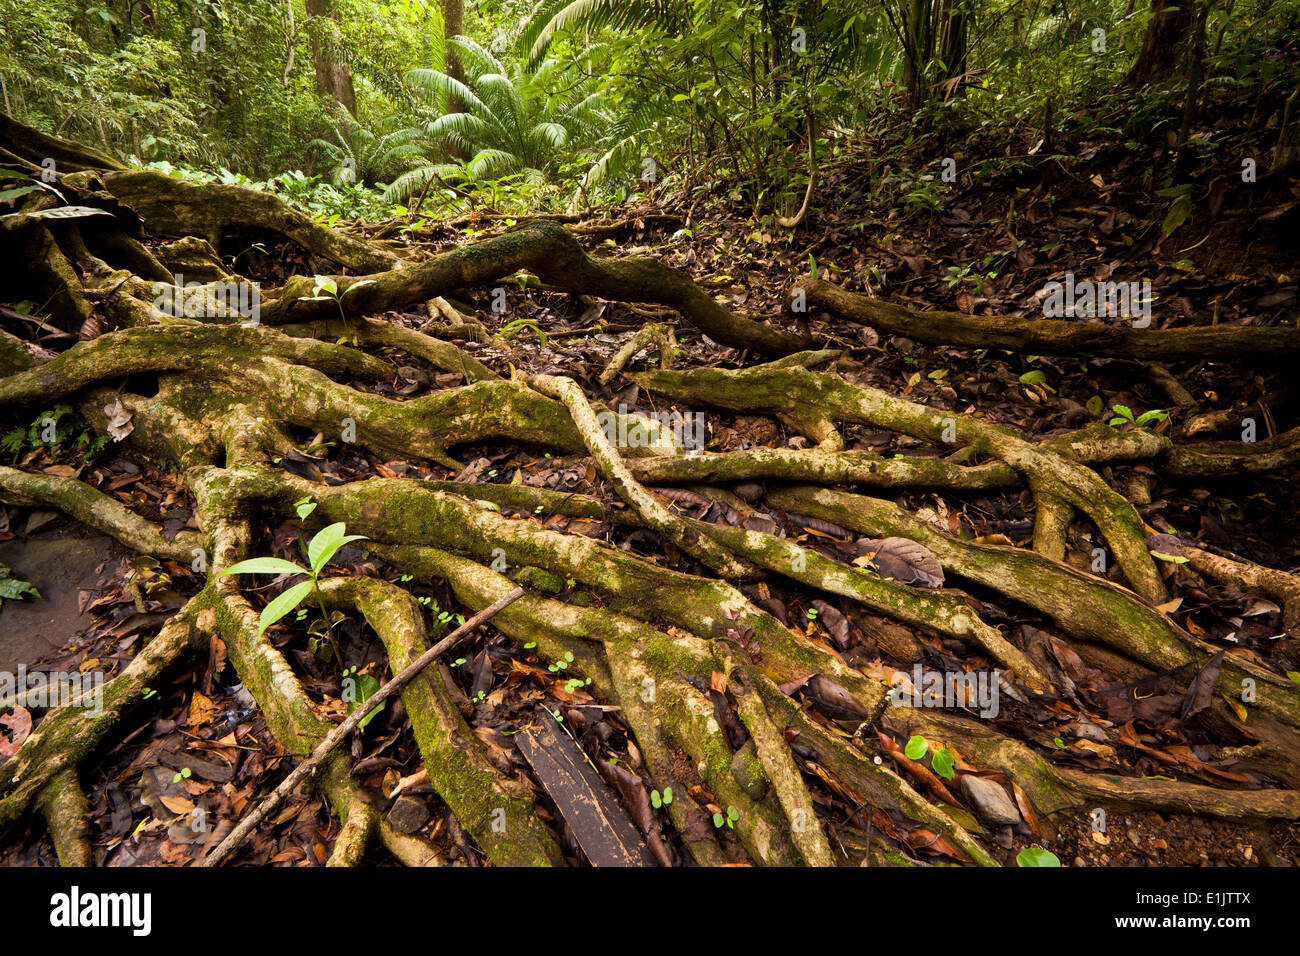 Roots at the forest floor in Soberania national park, Republic of Panama. - Stock Image